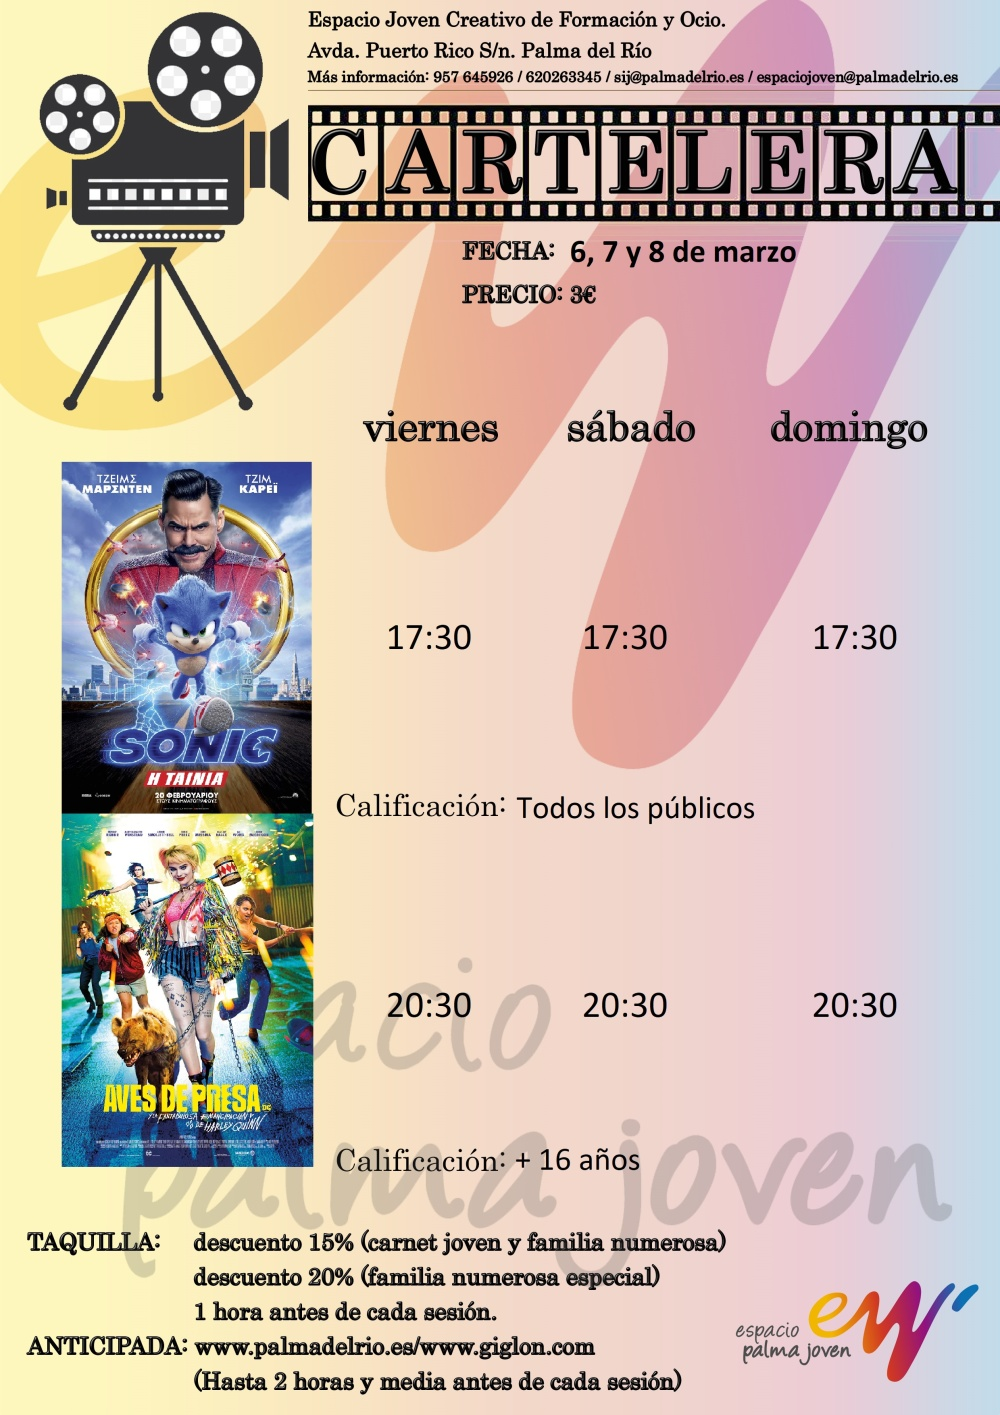 https://www.palmadelrio.es/sites/default/files/cartelera_cine_6_7_y_8_marzo.jpg